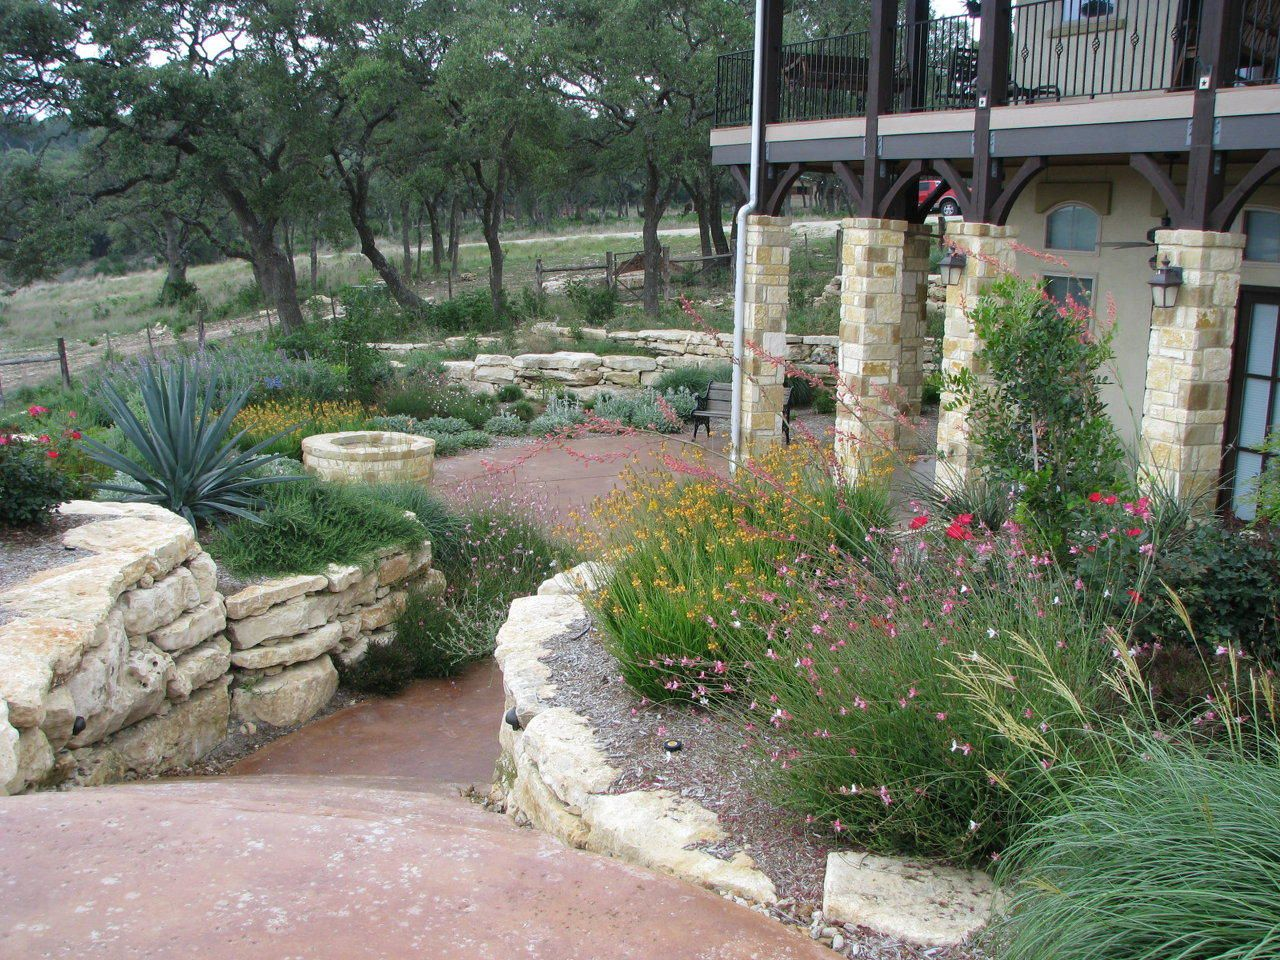 Country backyard garden ideas - Home Exteriors Decoration Or Outdoor Home Design Ideas Hill Country Landscape Texas With Desert Garden Design Ideas